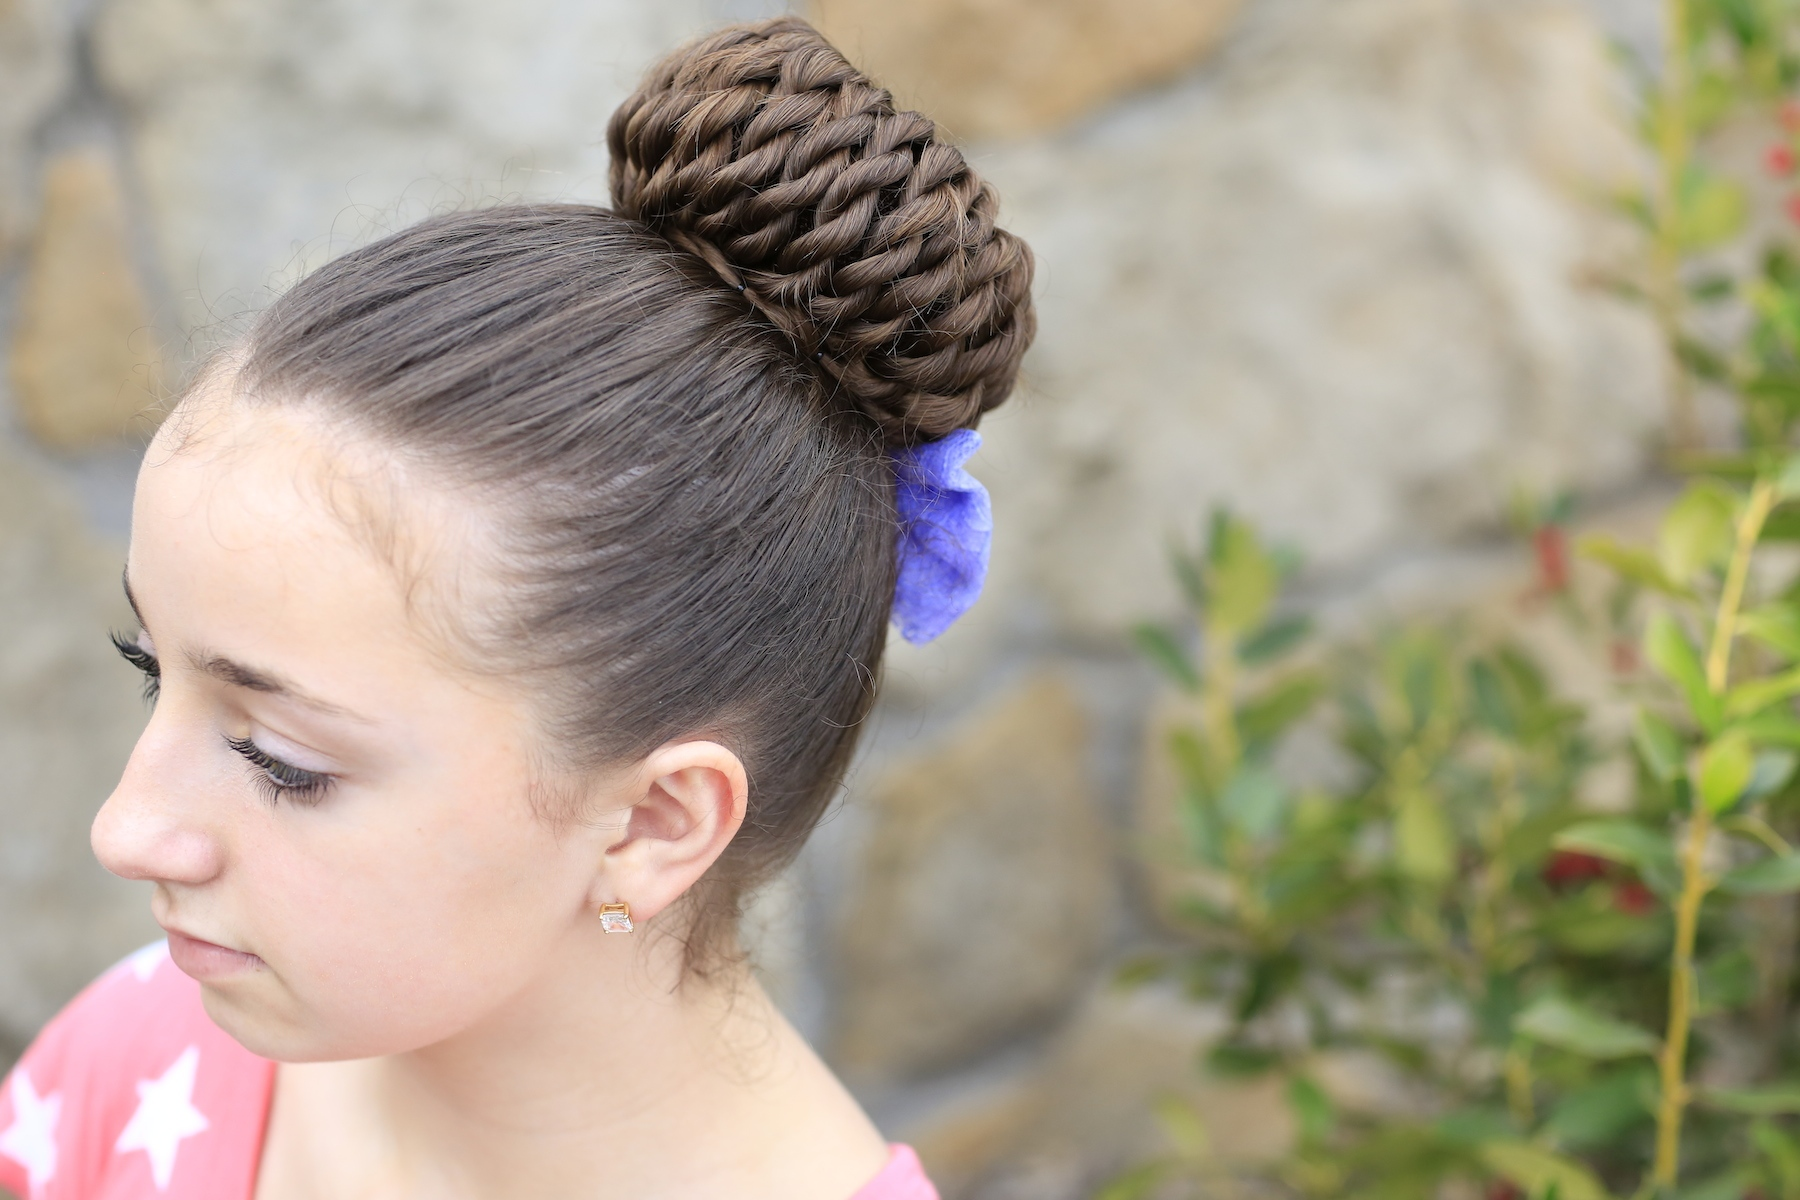 Simple  Instead Of Ponytails And Twist Them Up Into A Triple Twisted Braid Bun